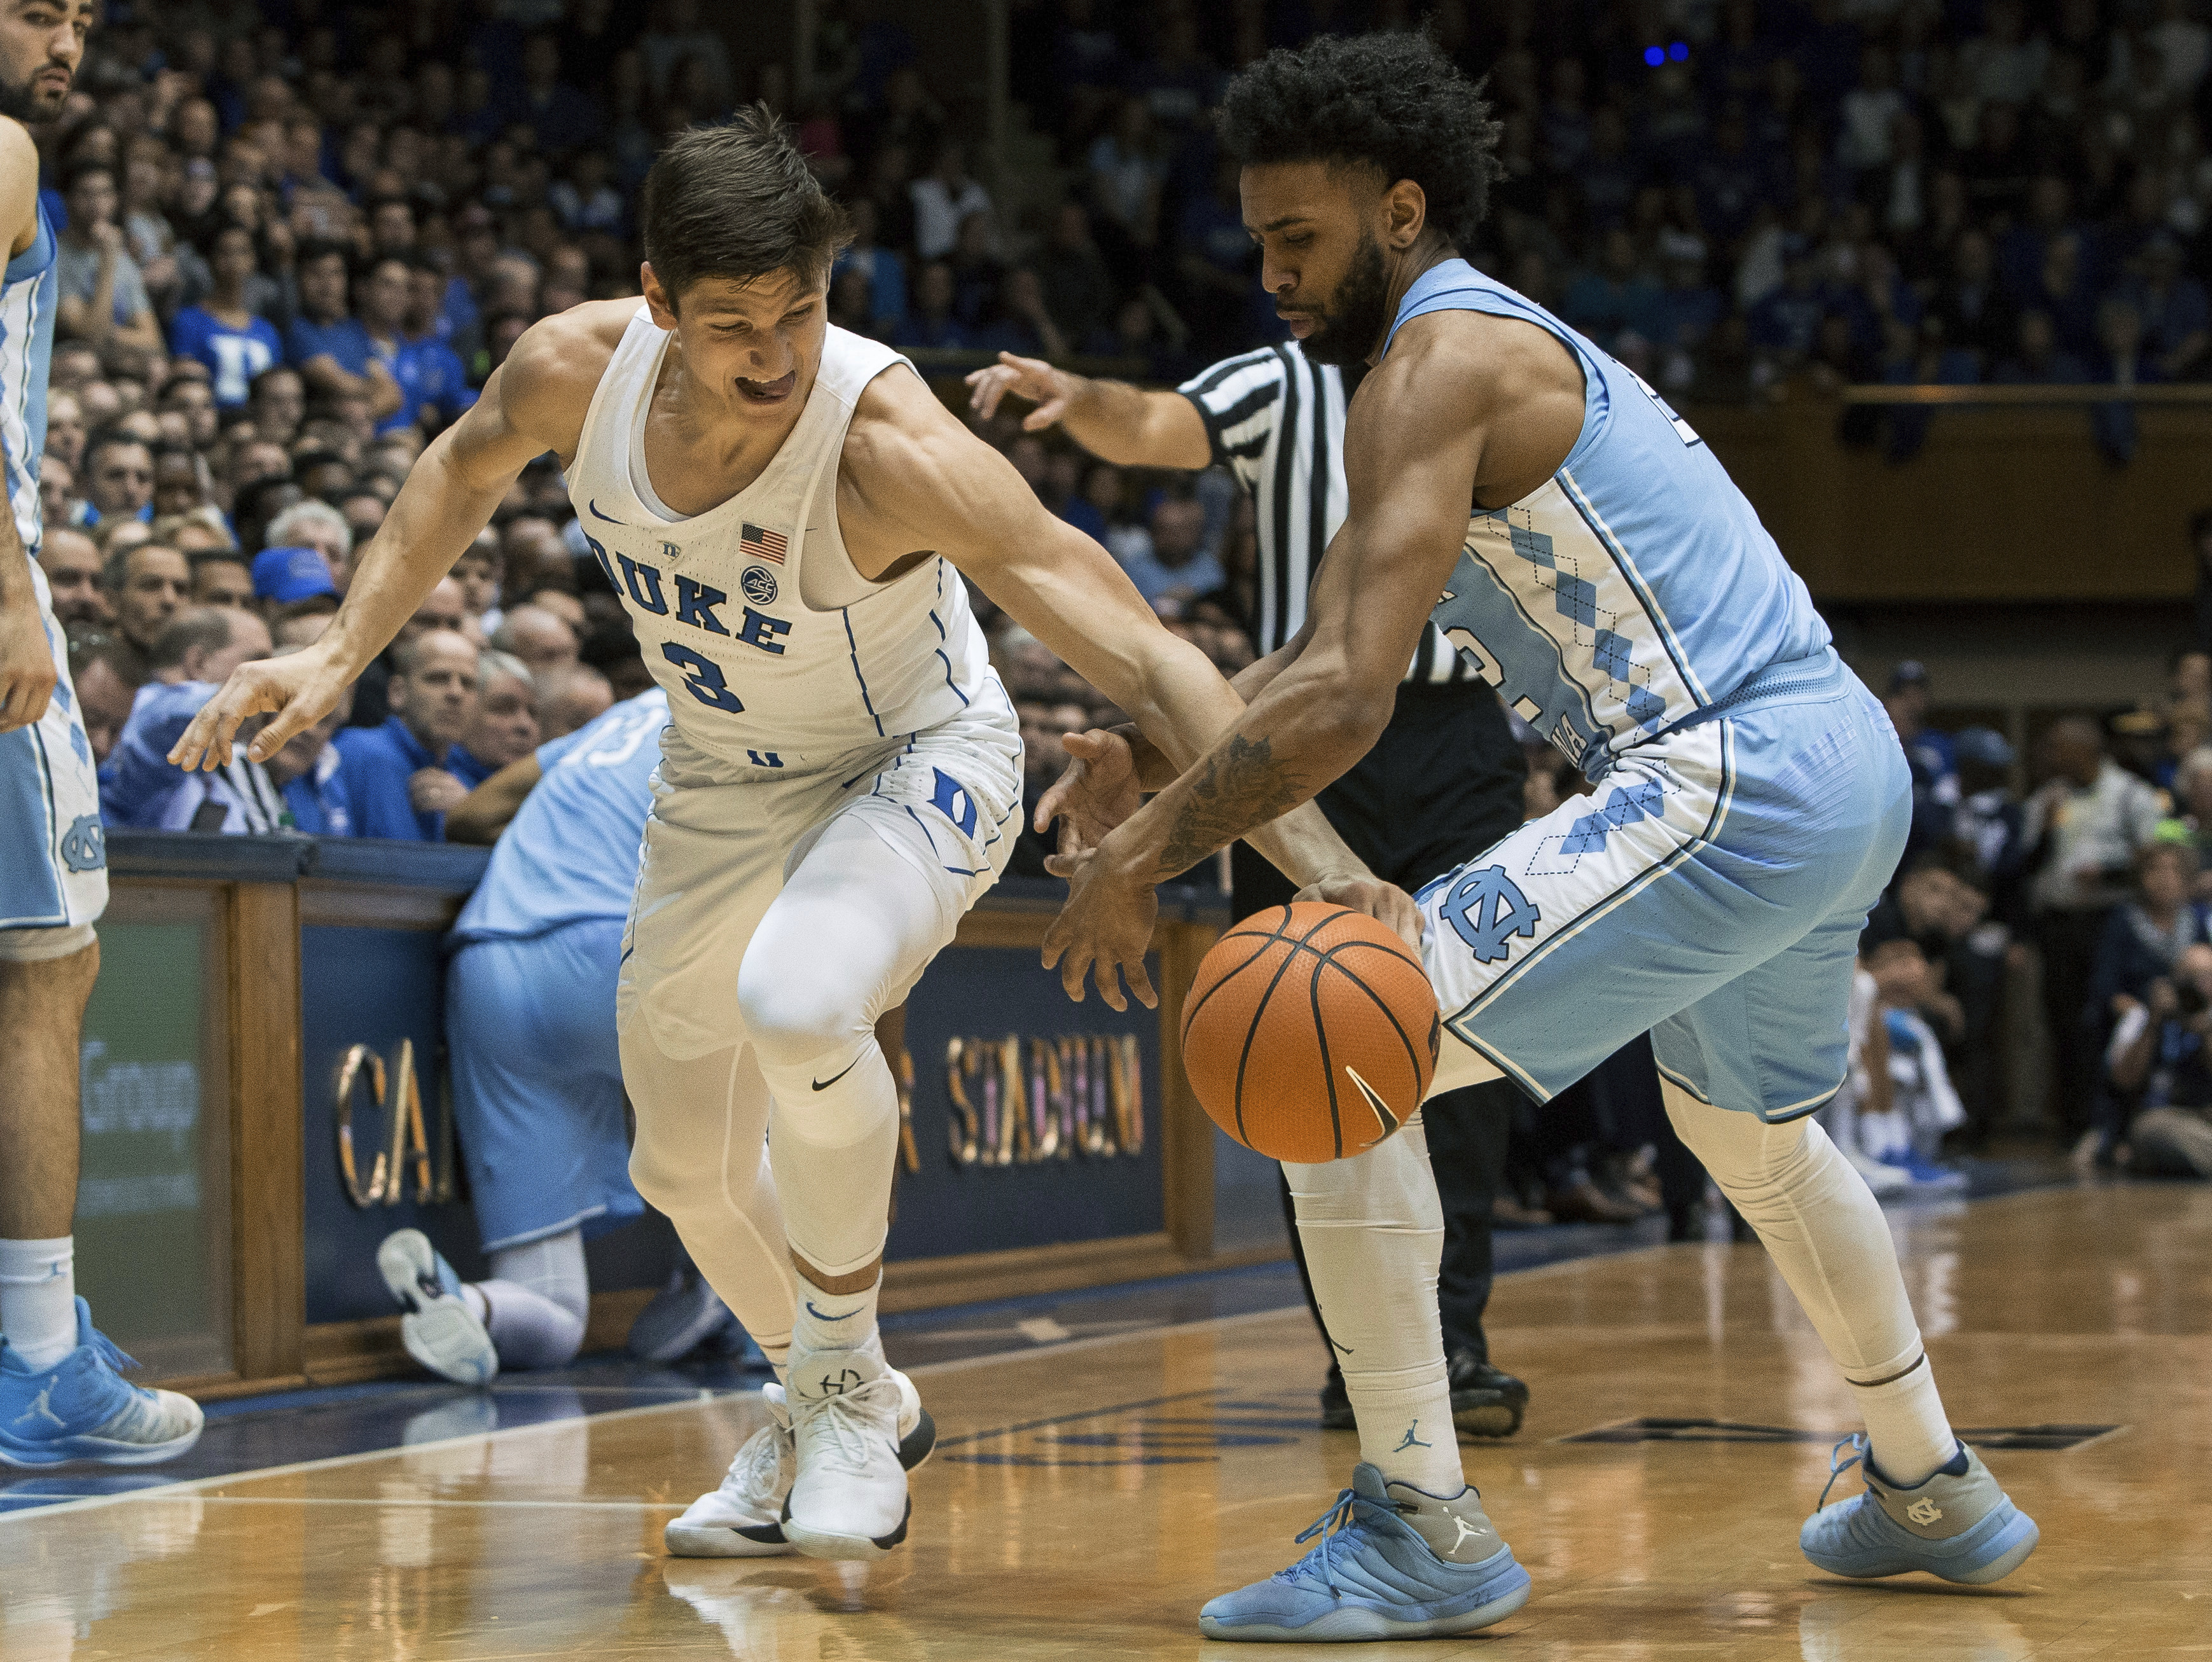 <div class='meta'><div class='origin-logo' data-origin='none'></div><span class='caption-text' data-credit='AP Photo/Ben McKeown'>Duke's Grayson Allen (3) and North Carolina's Joel Berry II fight for a loose ball during the first half of an NCAA college basketball game</span></div>